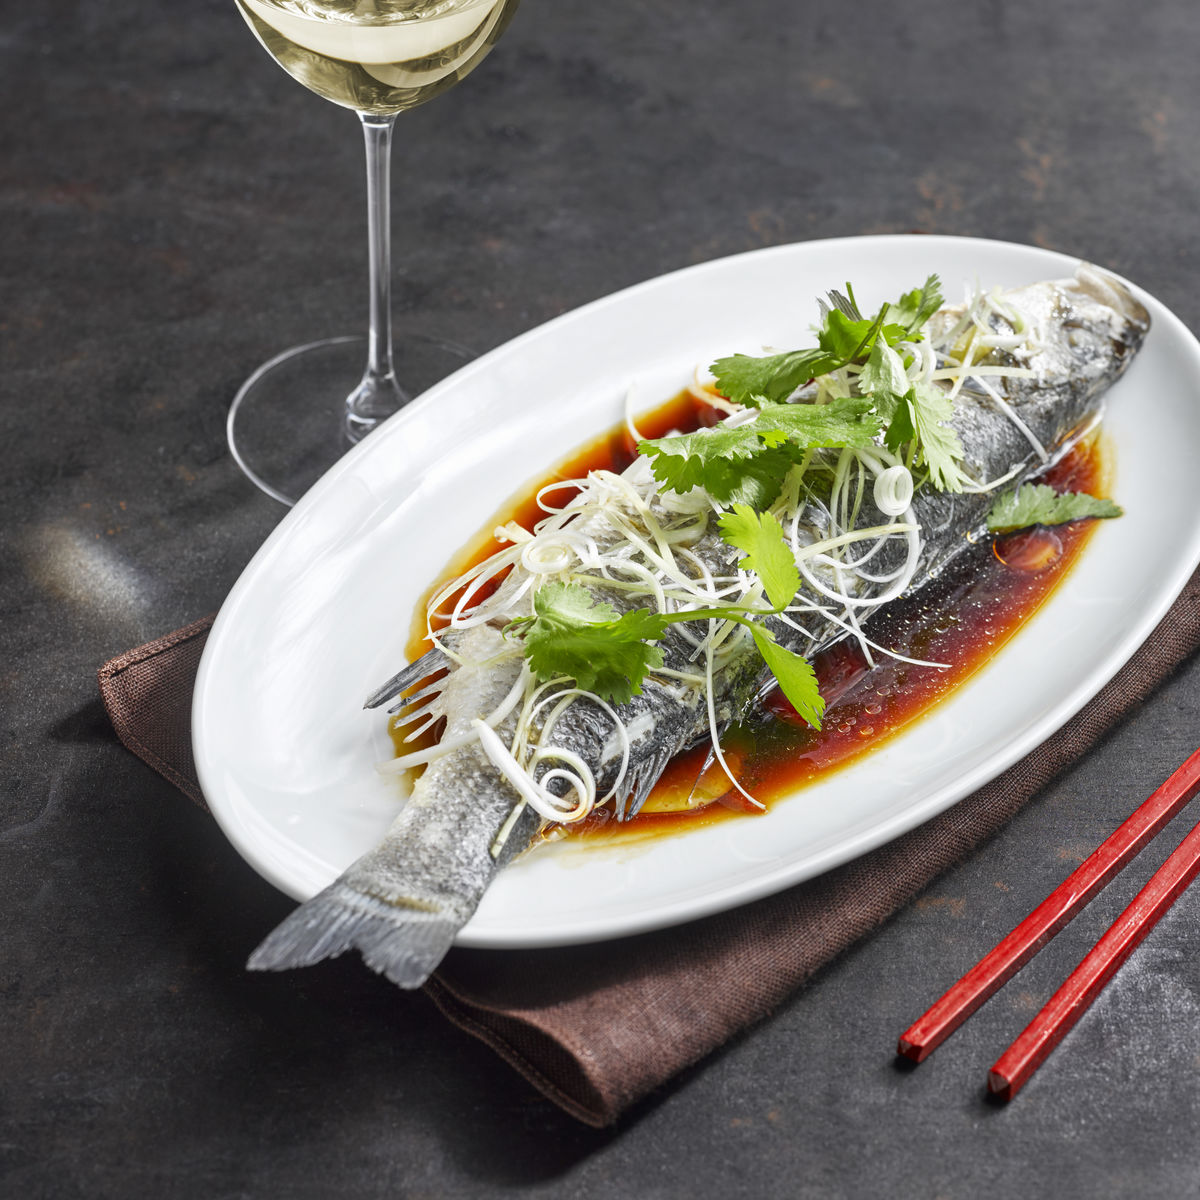 The picture shows the dish steamed fish and a glass of white wine.